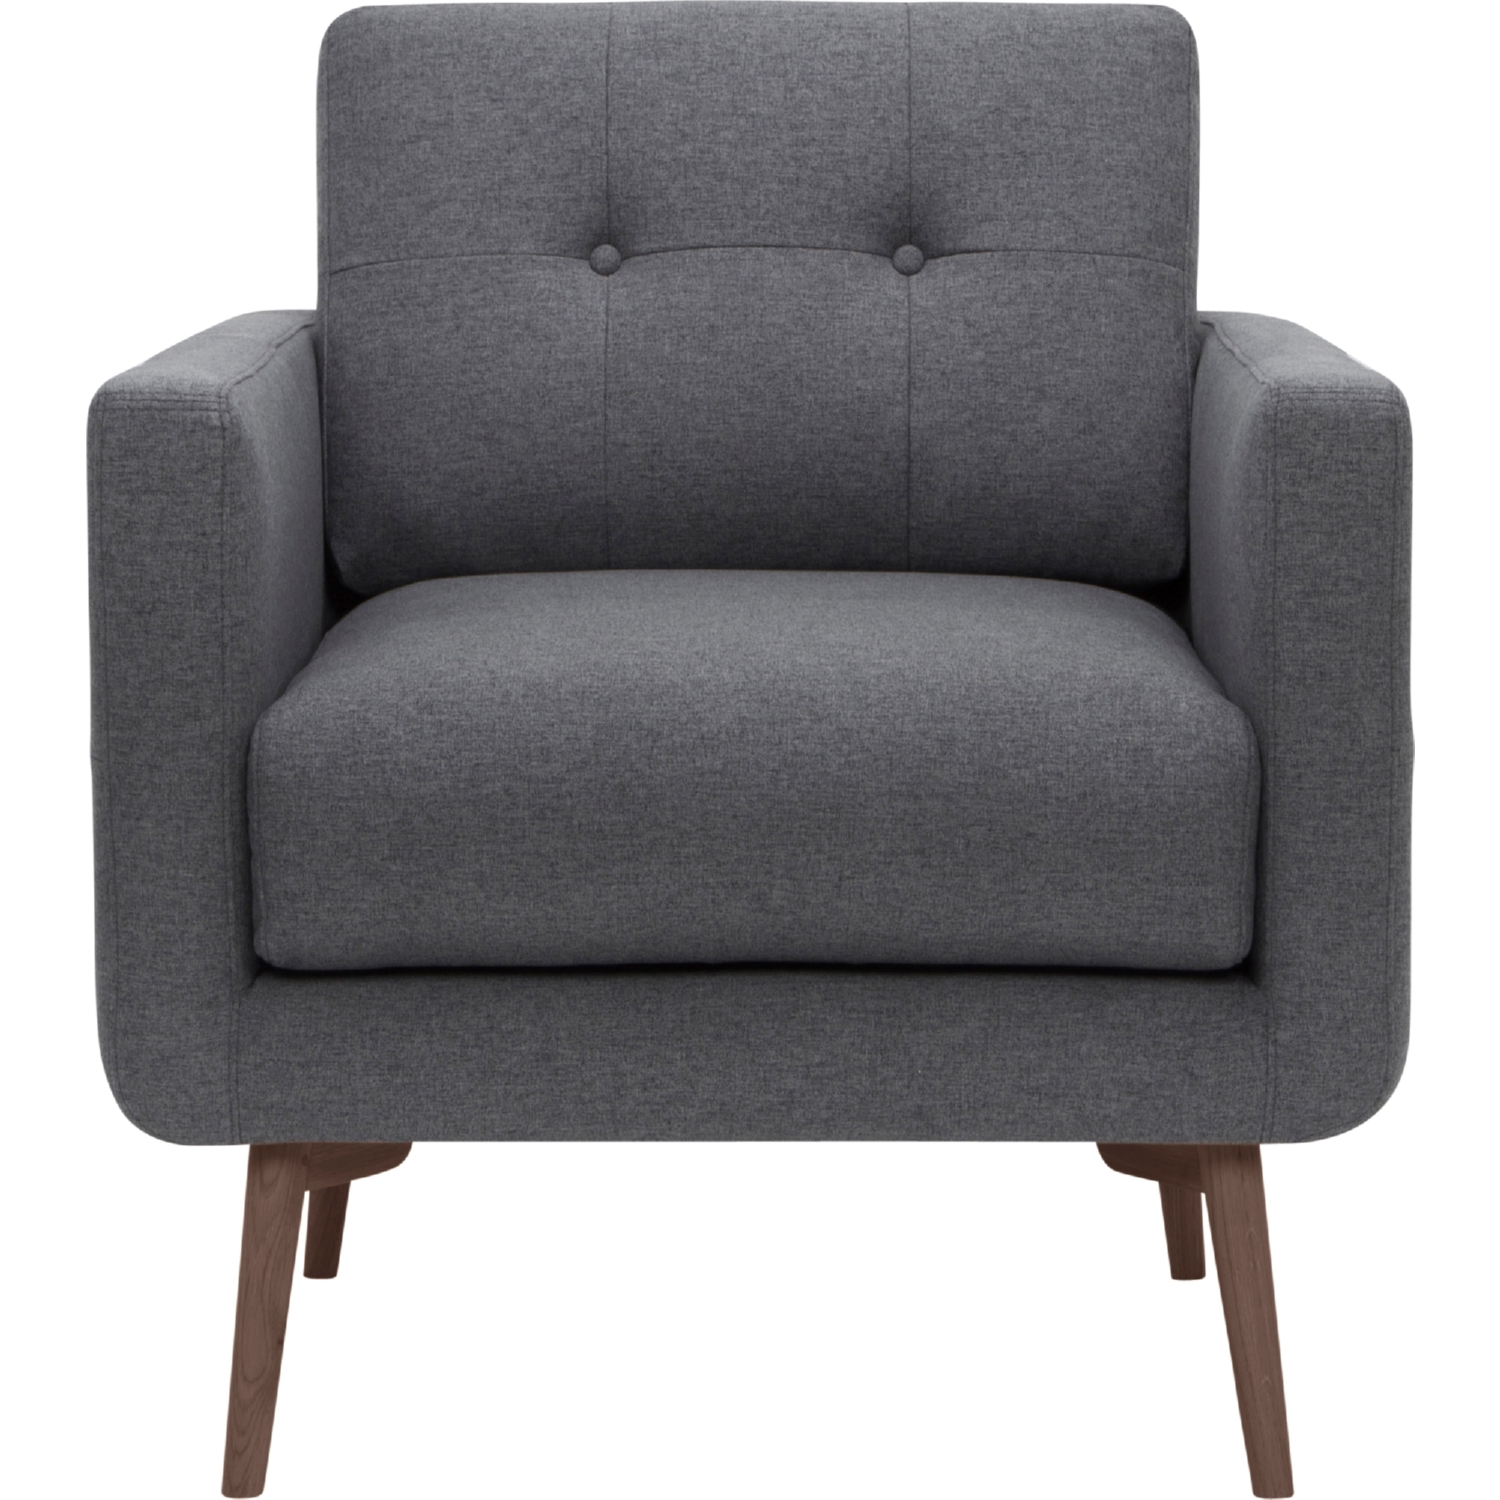 Nuevo Modern Furniture HGSC126 Ingrid Arm Chair in Tufted Shale